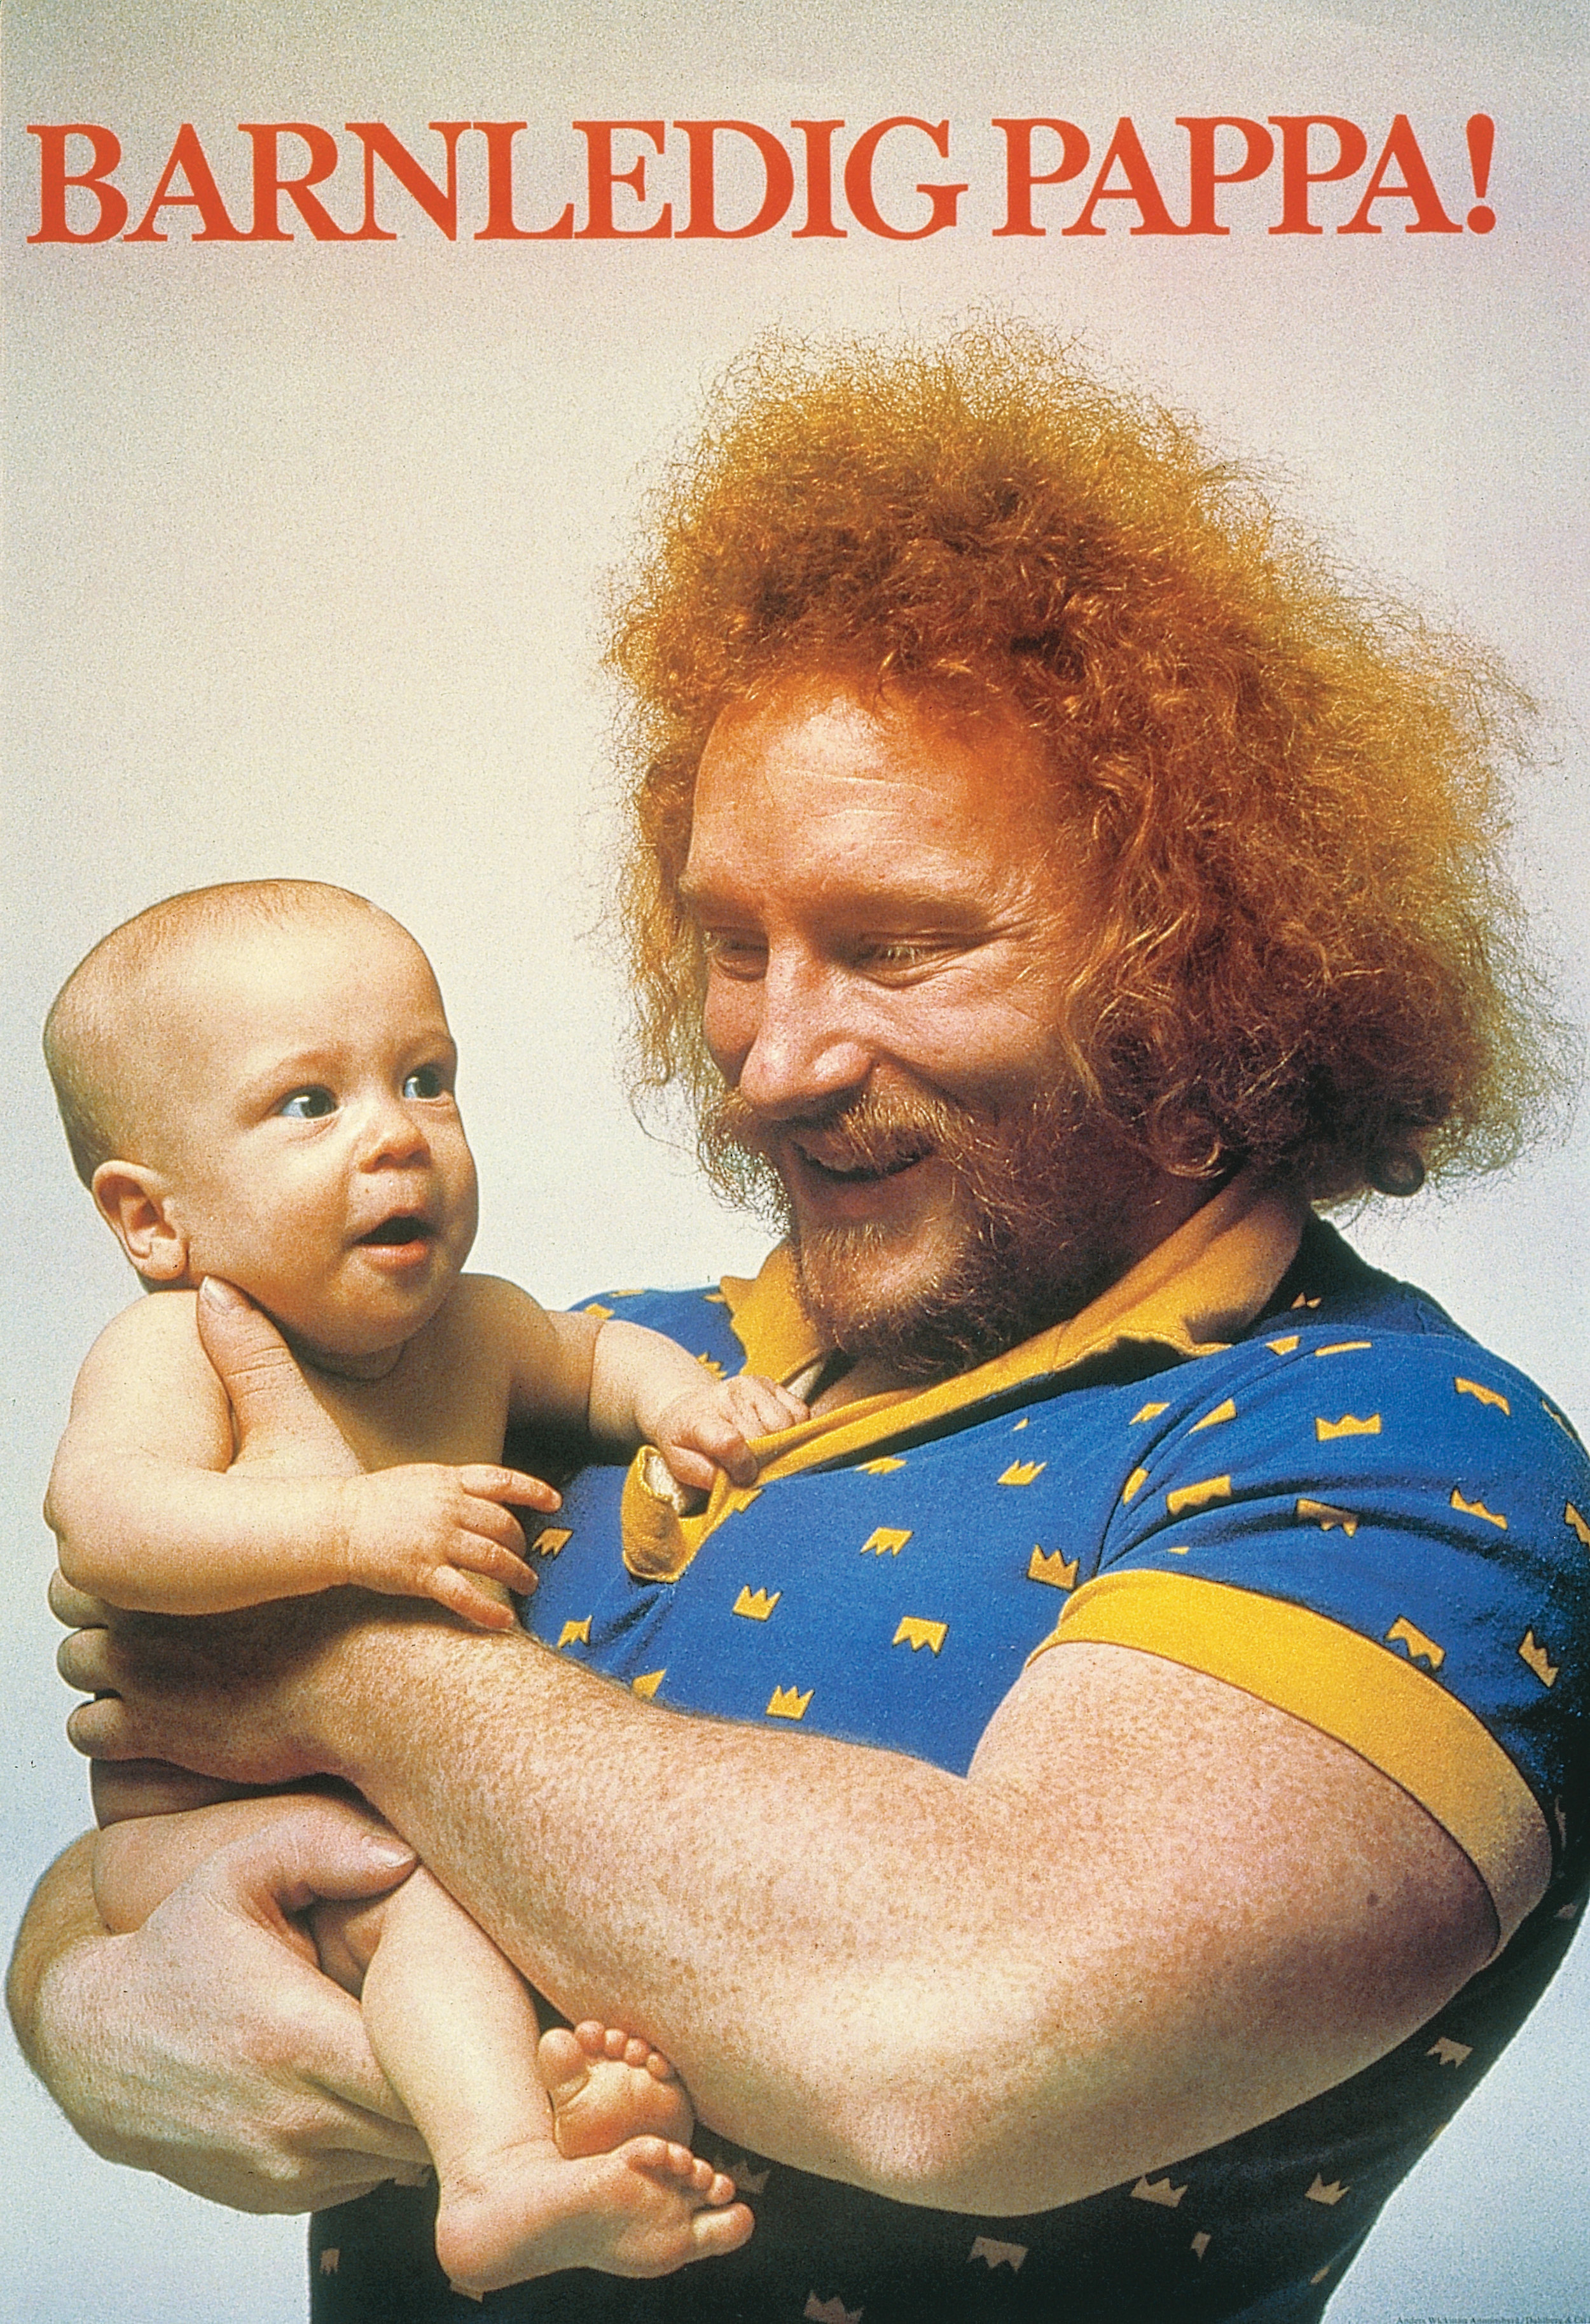 """A famous 70's campaign encouraging paternity leave featuring Swedish weightlifter Lennart """"Hoa-Hoa"""" Dahlgren.  Photo courtesy of    vam.ac.uk"""